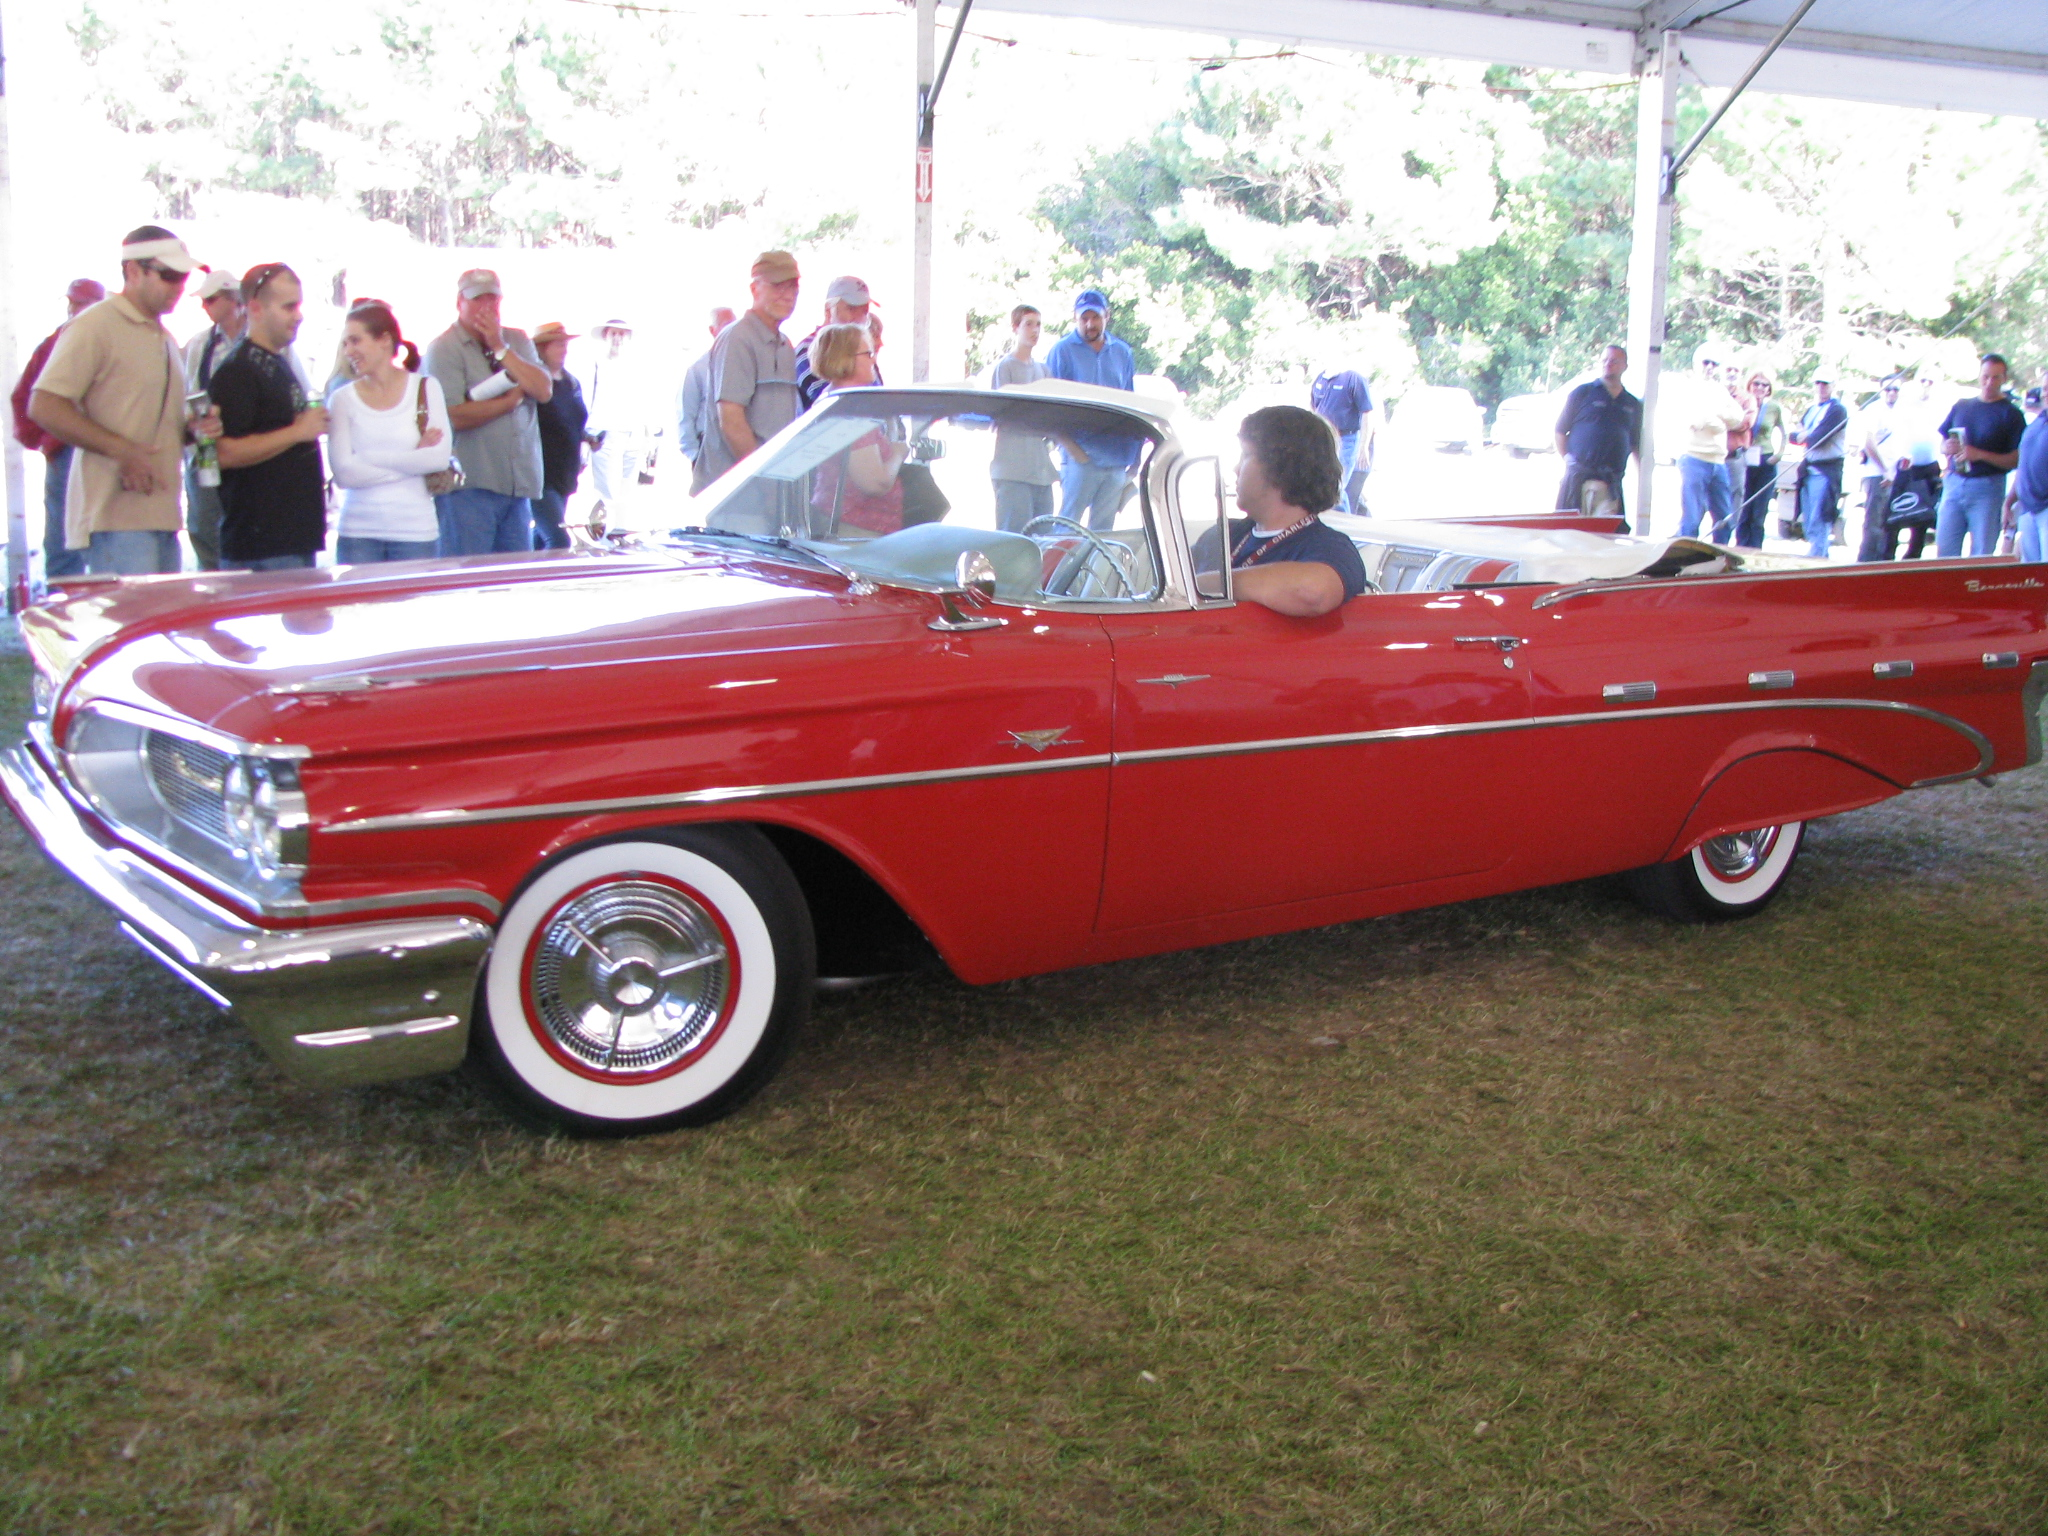 1959 Pontiac Bonneville convertible | Flickr - Photo Sharing!